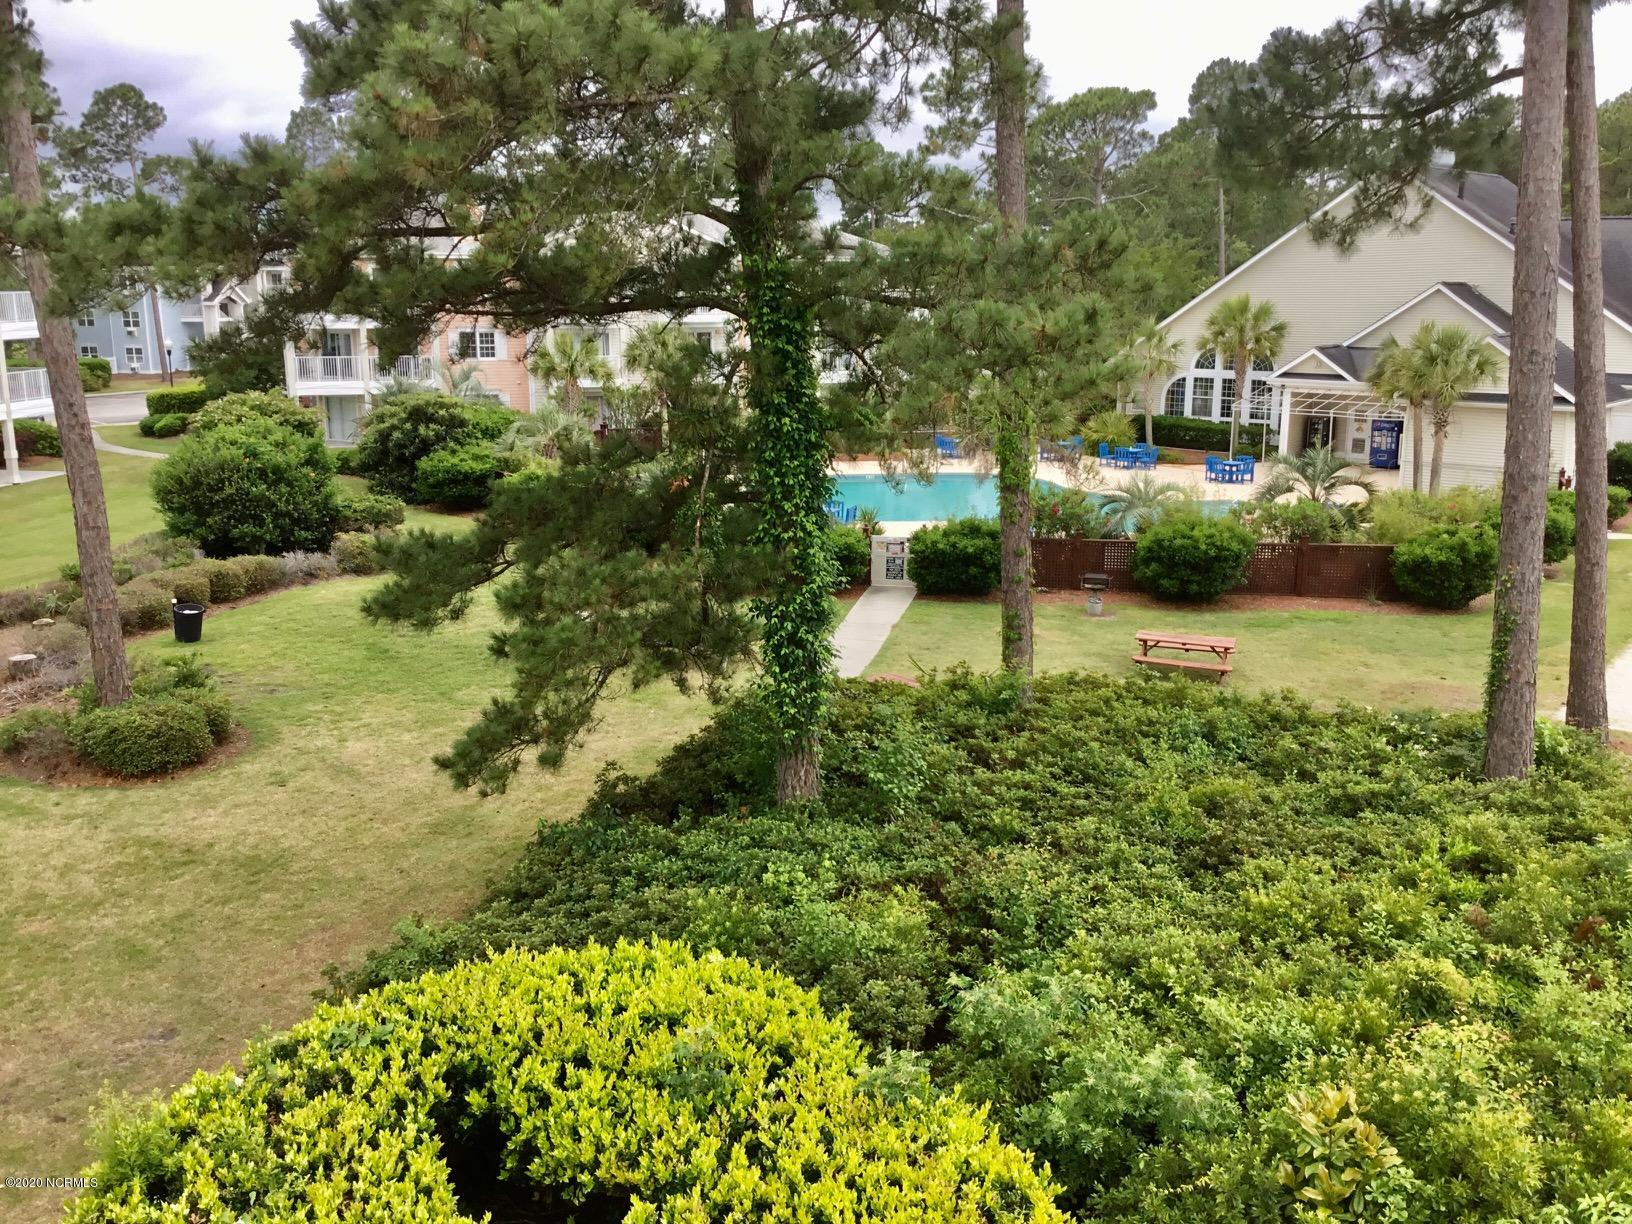 330 Middleton Drive, Calabash, North Carolina 28467, 2 Bedrooms Bedrooms, 5 Rooms Rooms,2 BathroomsBathrooms,Condominium,For sale,Middleton,100218723